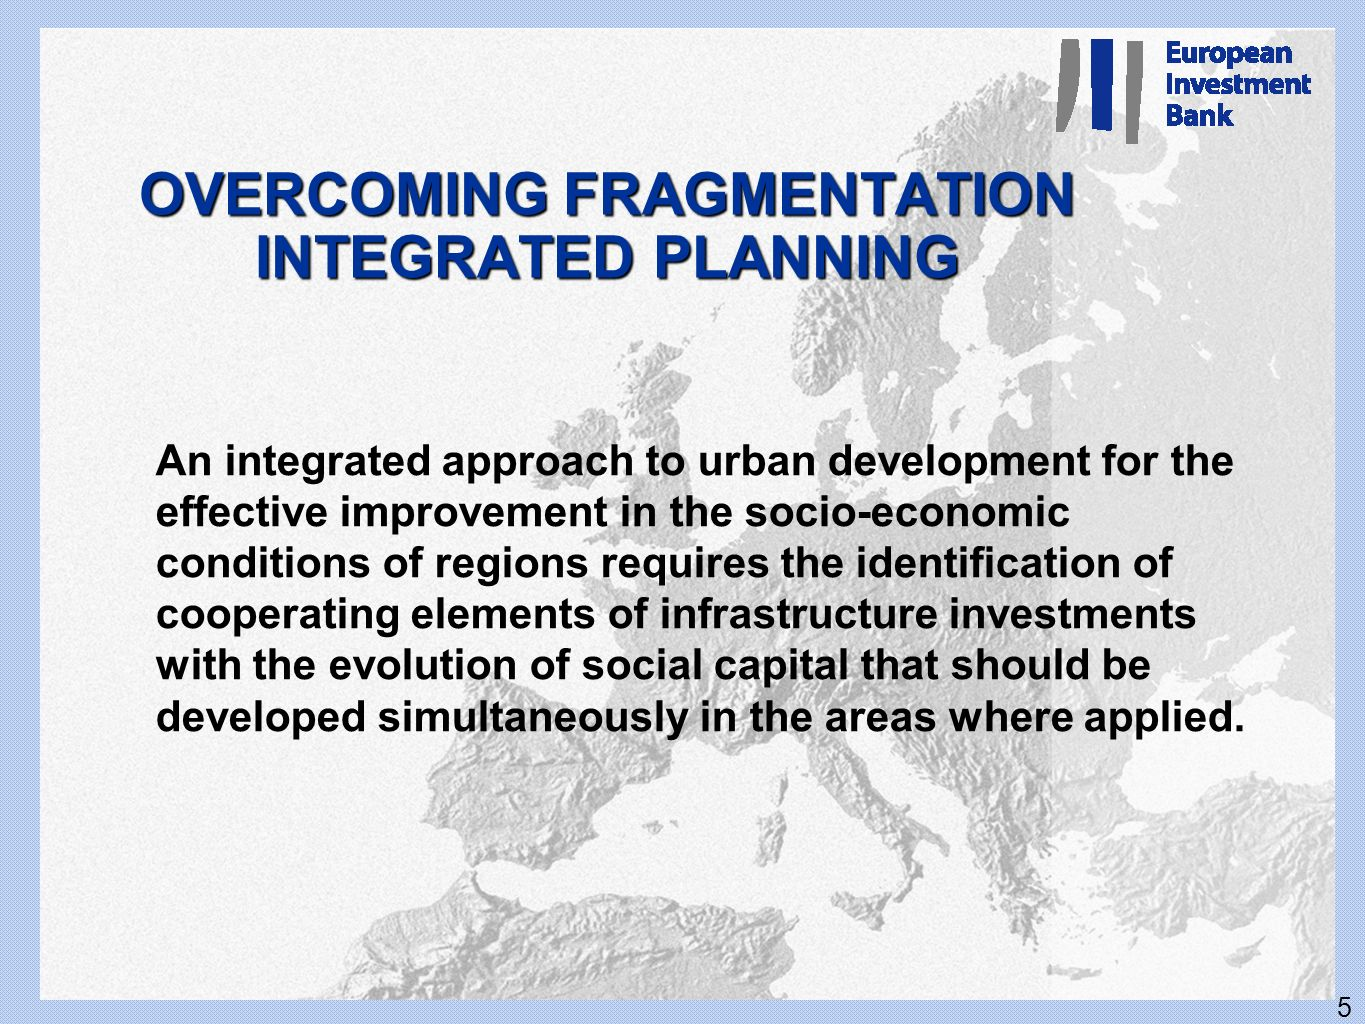 OVERCOMING FRAGMENTATION INTEGRATED PLANNING